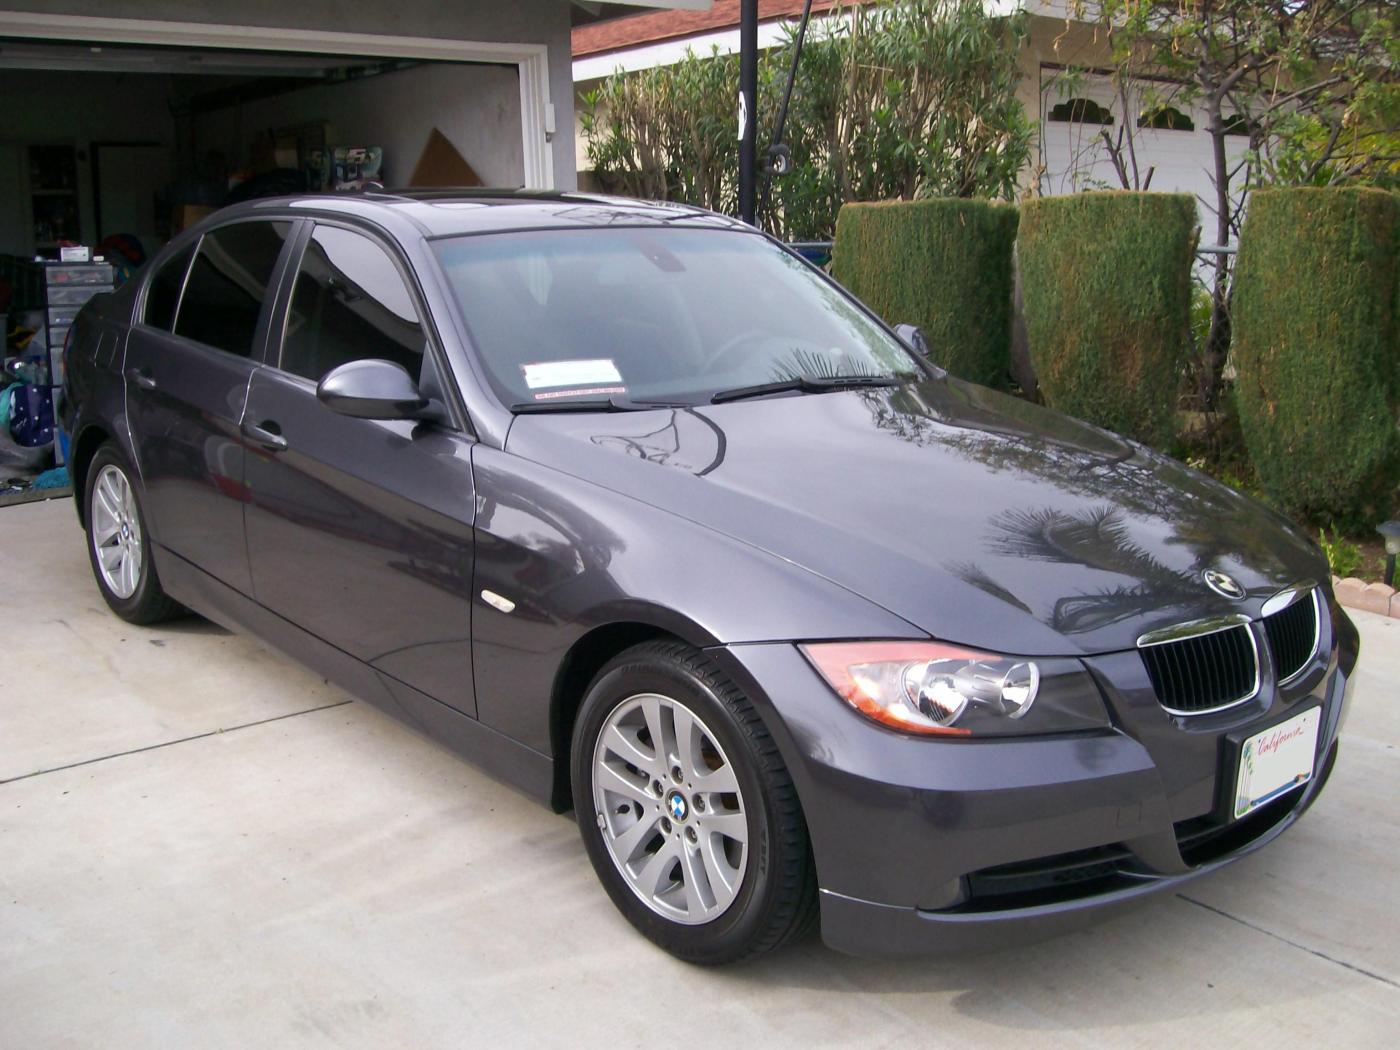 FS BMW I E Manual Transmission - Bmw 325i manual